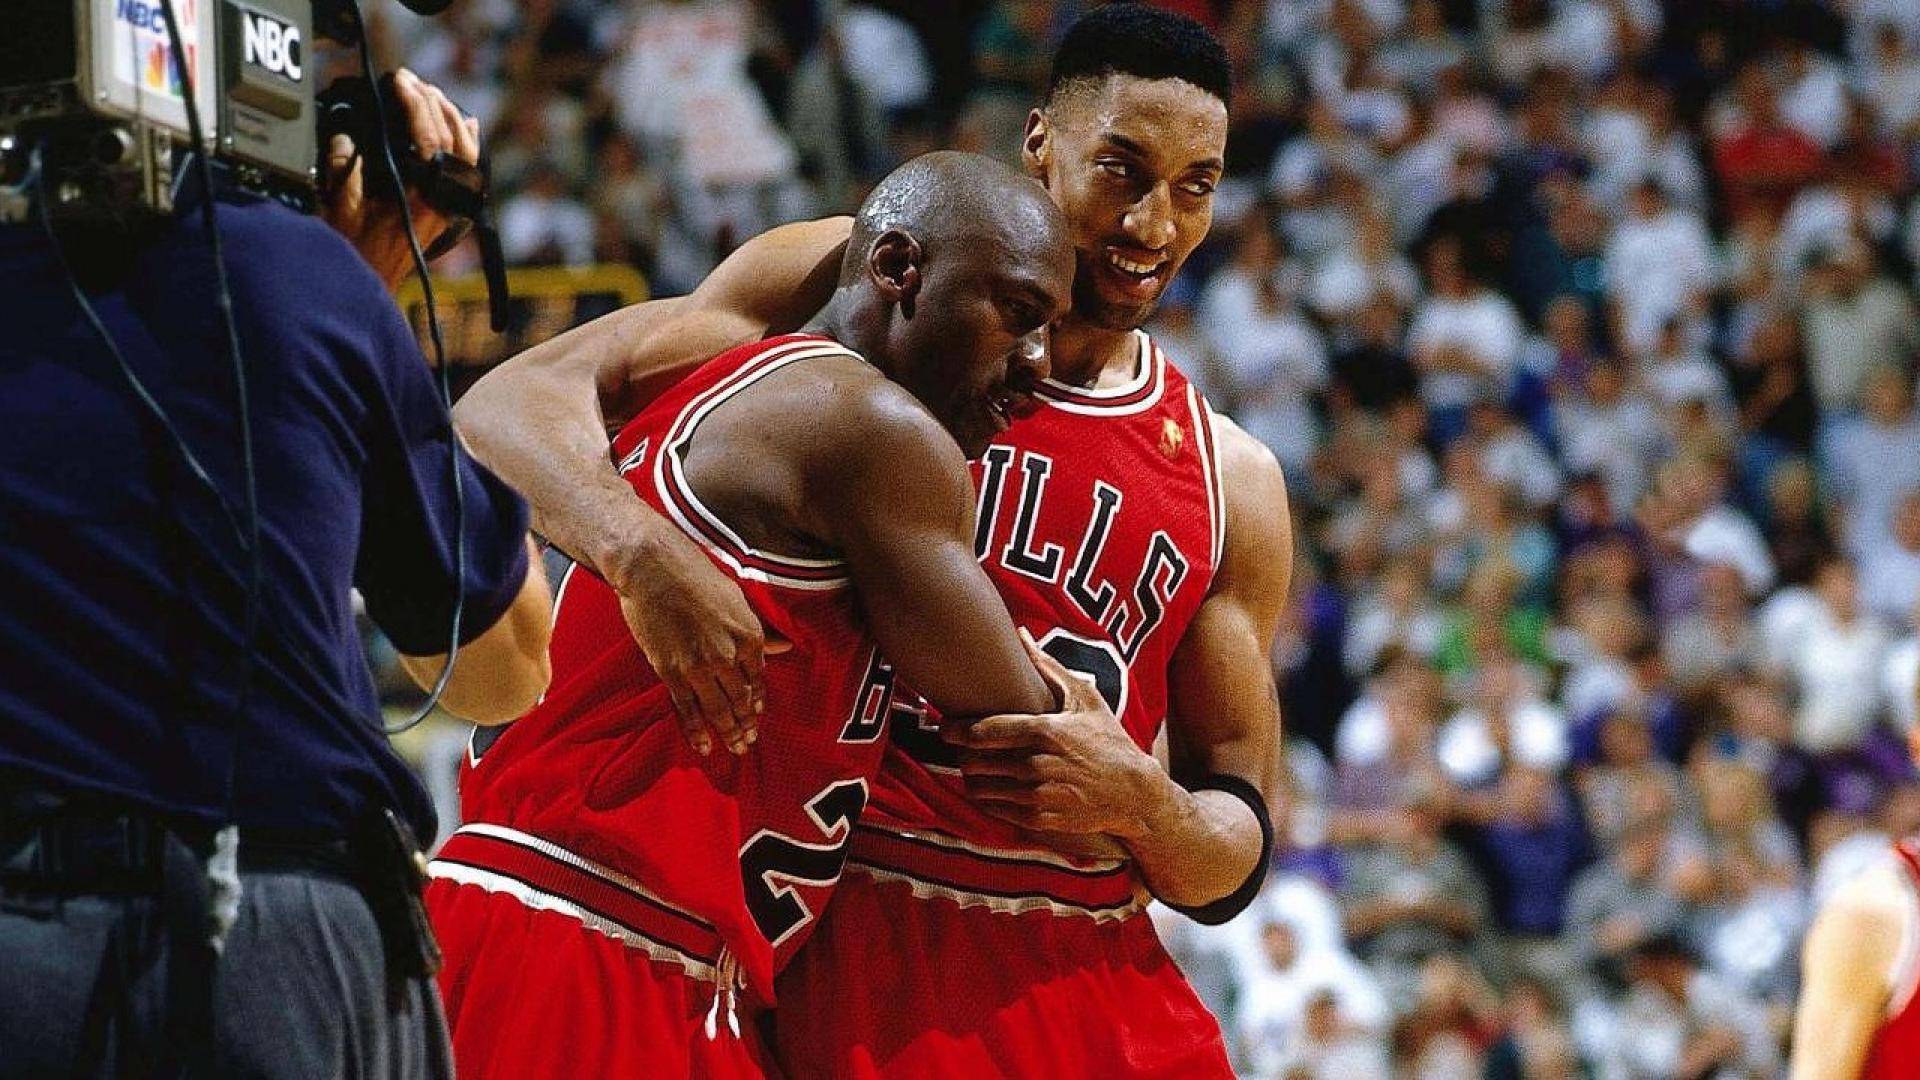 Top NBA Finals moments: Michael Jordan's flu game in 1997 Finals | NBA.com